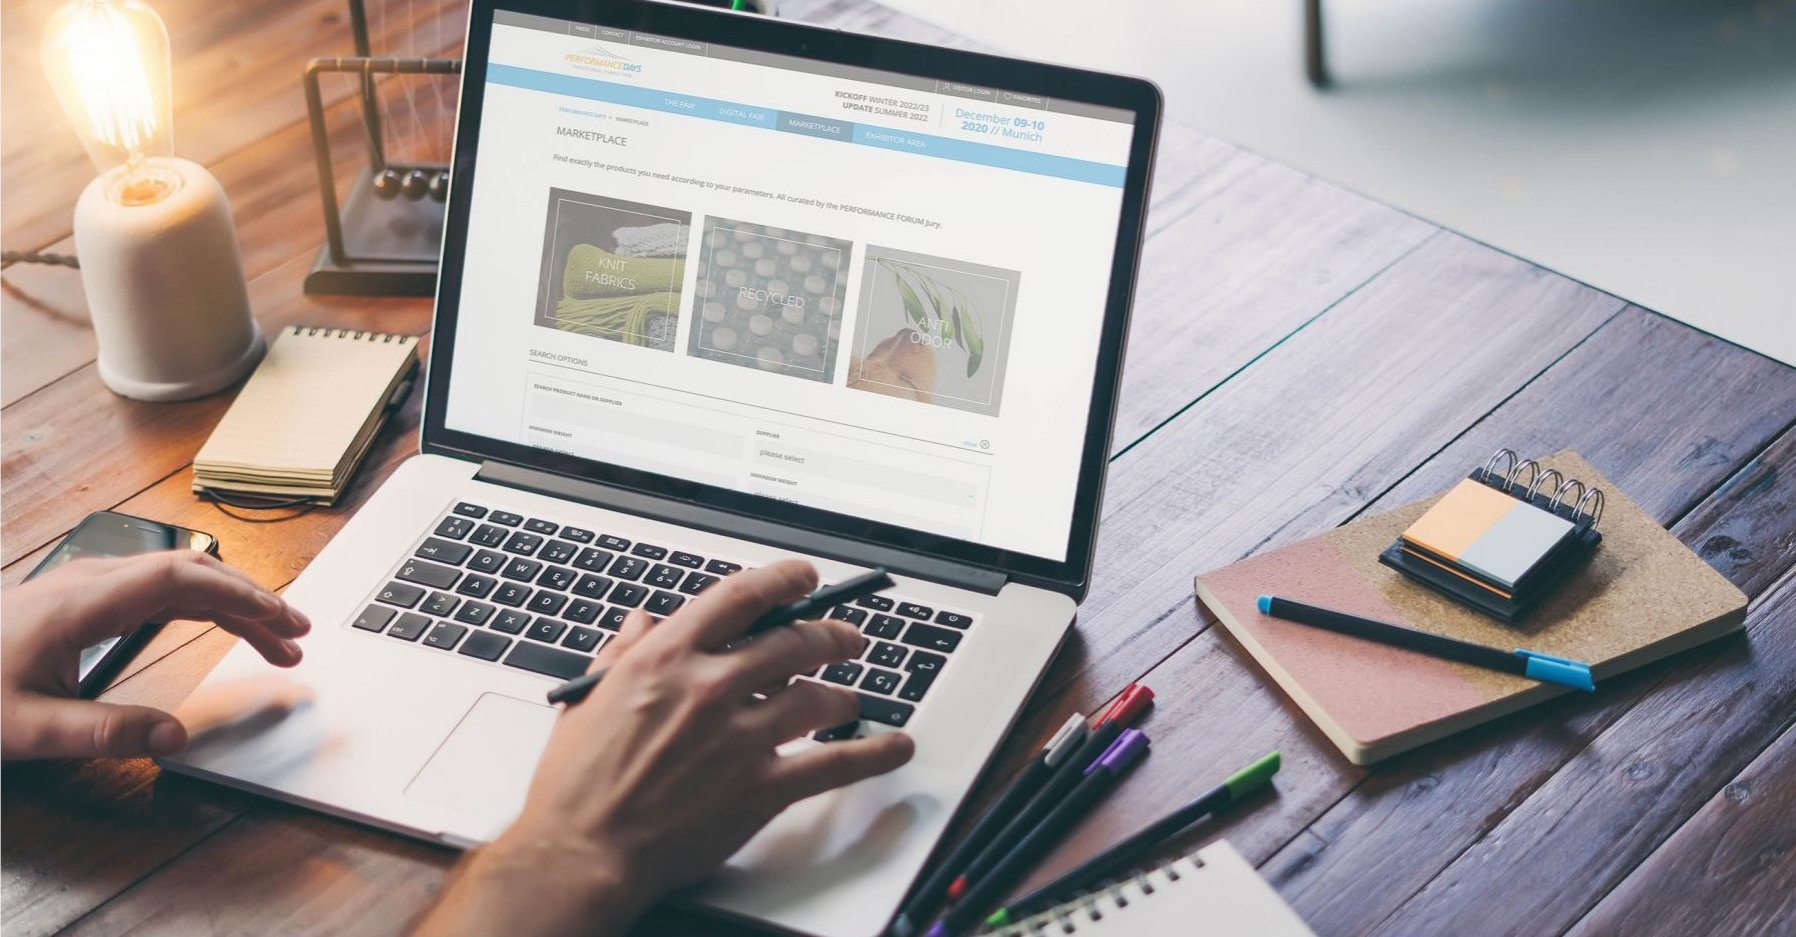 The online PERFORMANCE DAYS LOOP, in partnership with Functional Fabric Fair, is enabling designers, product purchasers and material managers to digitally source goods and access the latest trends and innovations in the functional fabric industry 365 days per year.